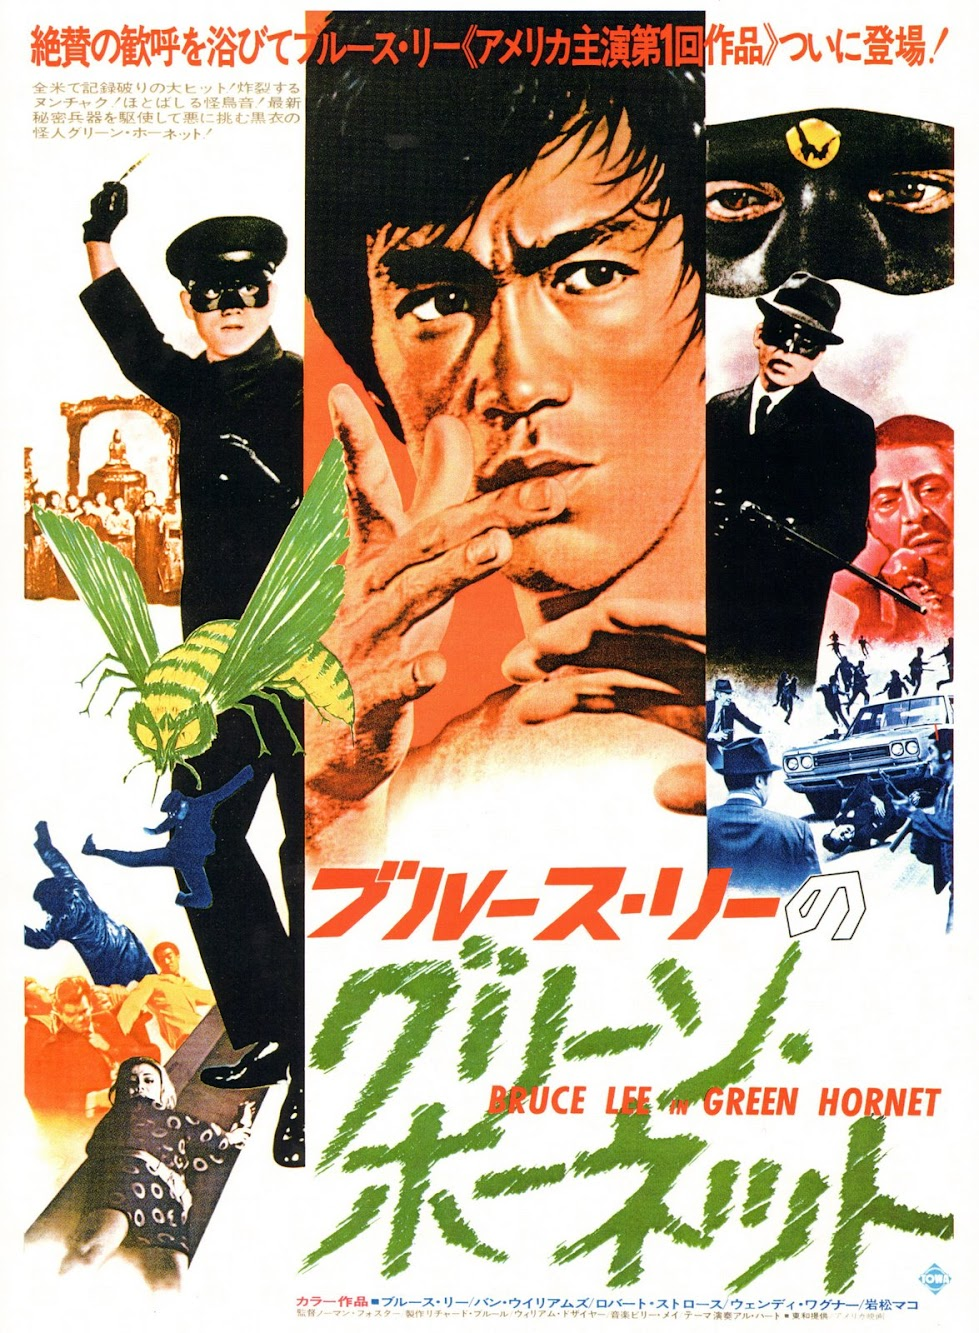 Kato & The Green Hornet